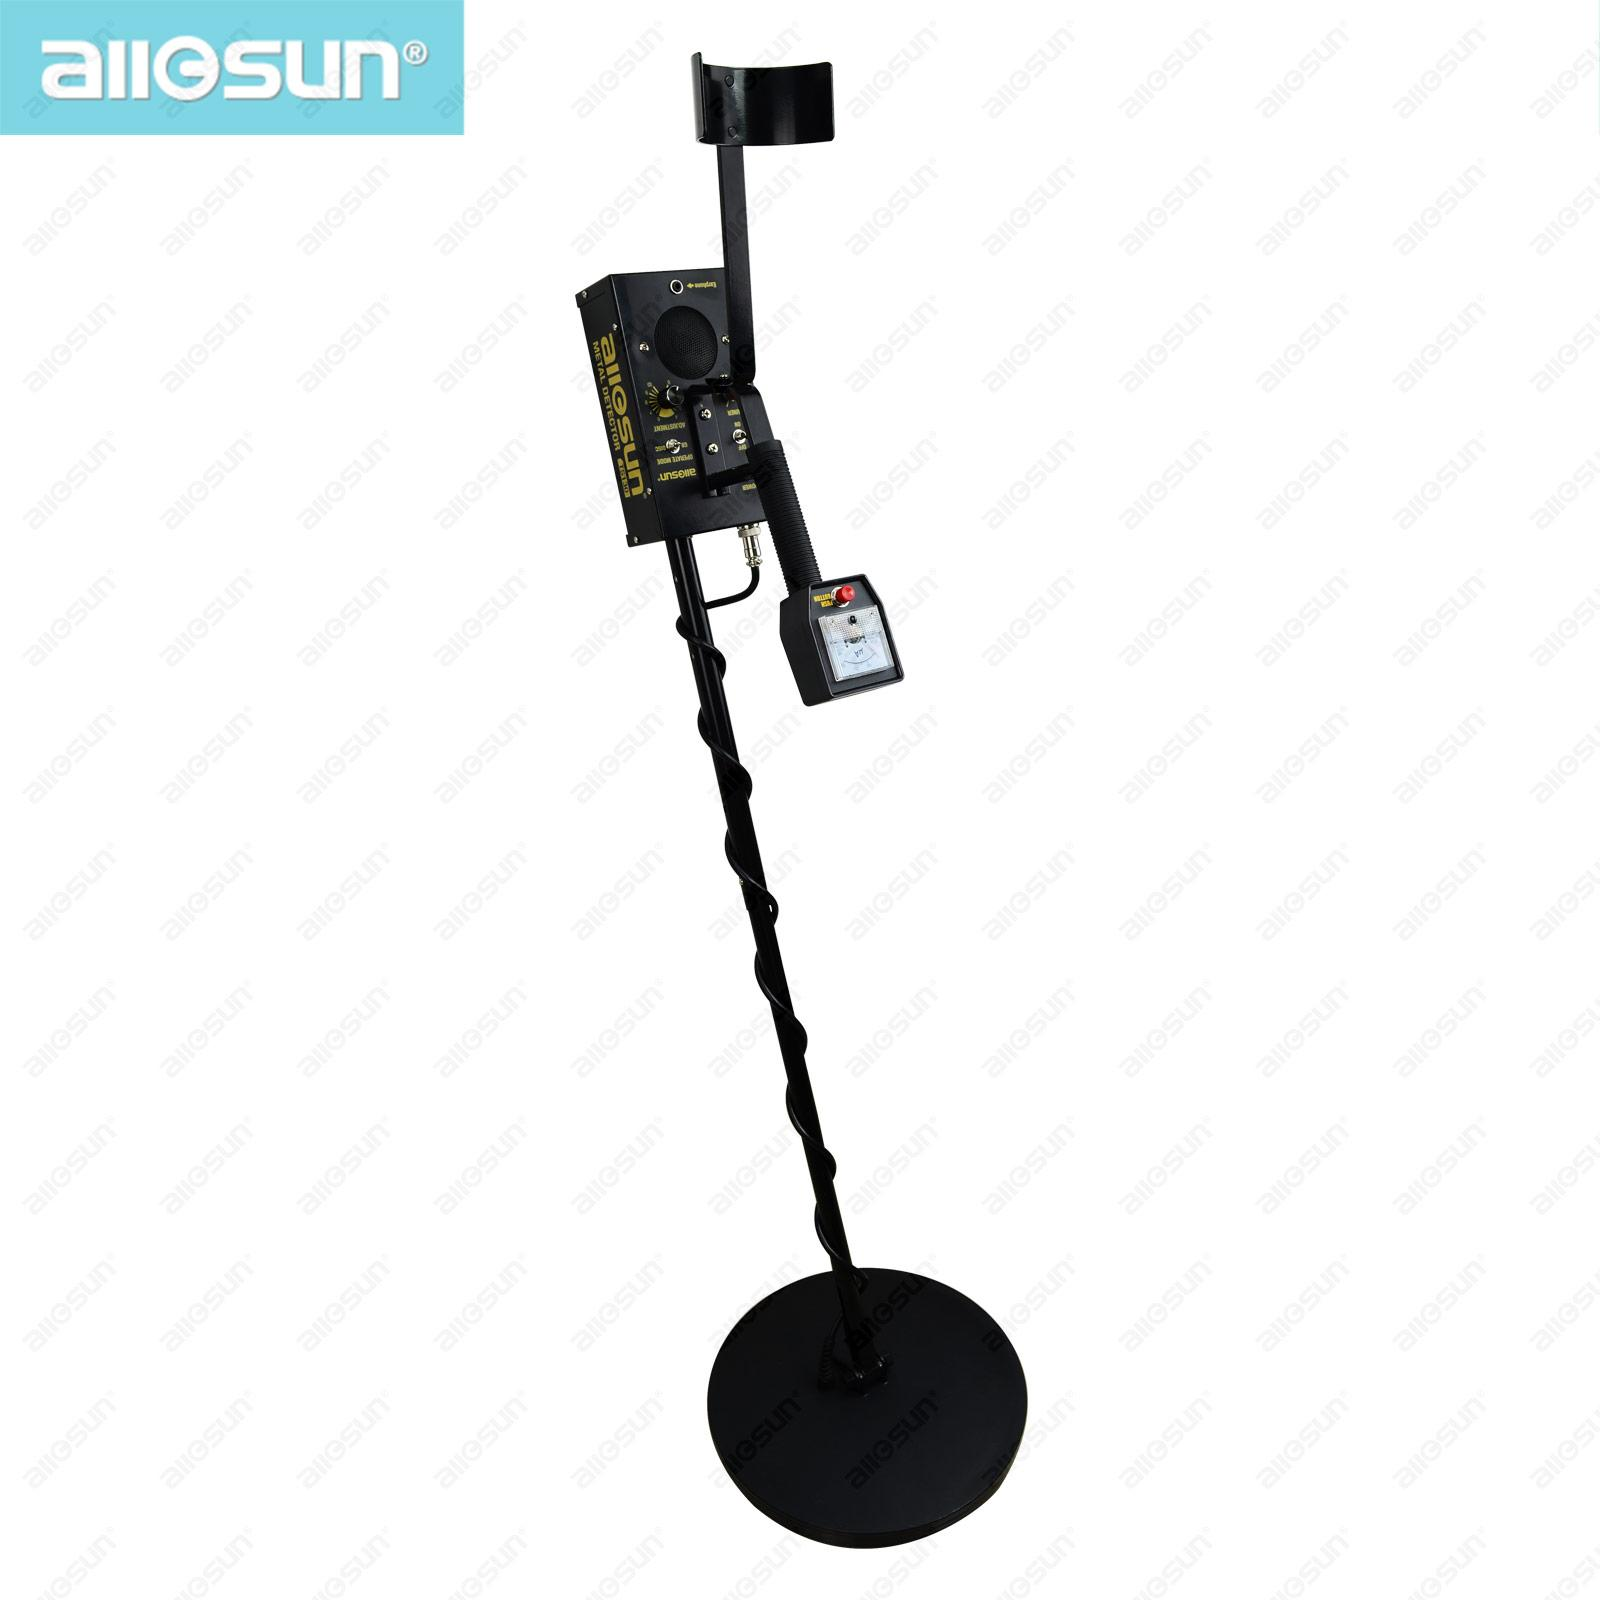 2018 Pro Underground Metal Detector High Sensitivity Treasure Pulse Induction Circuit As Well Gold Silver Hunter Minerals With Earphone All Sun Model Ts130 From Allsun